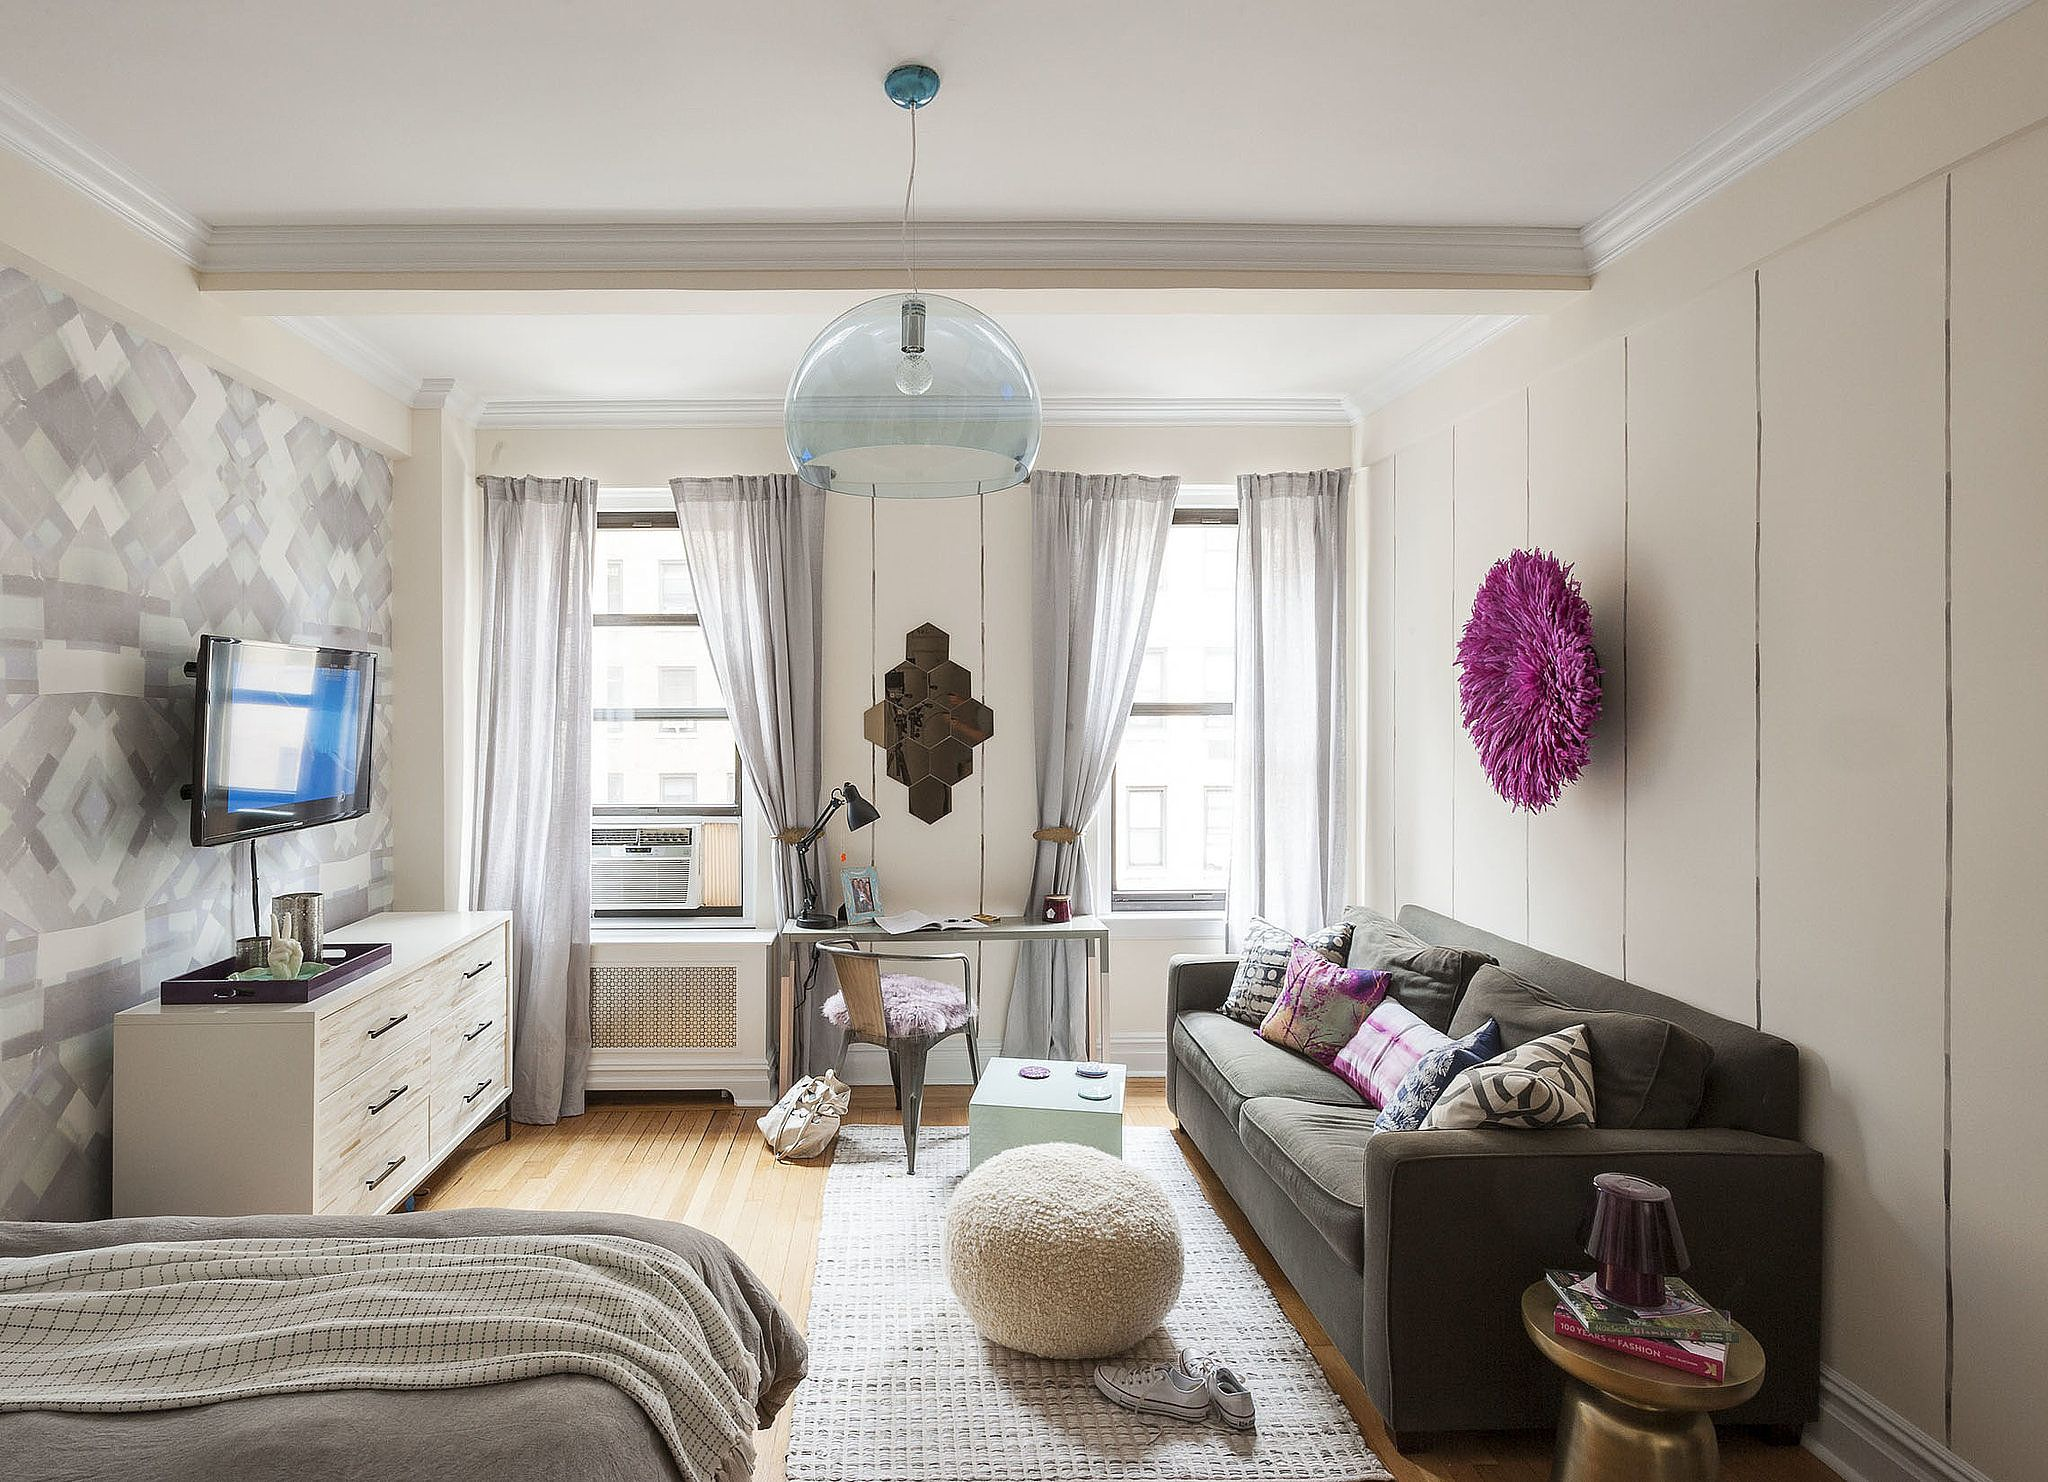 The Most Stylish Studio Apartments In North America Small Studio Apartment Decorating Studio Apartment Decorating Apartment Inspiration